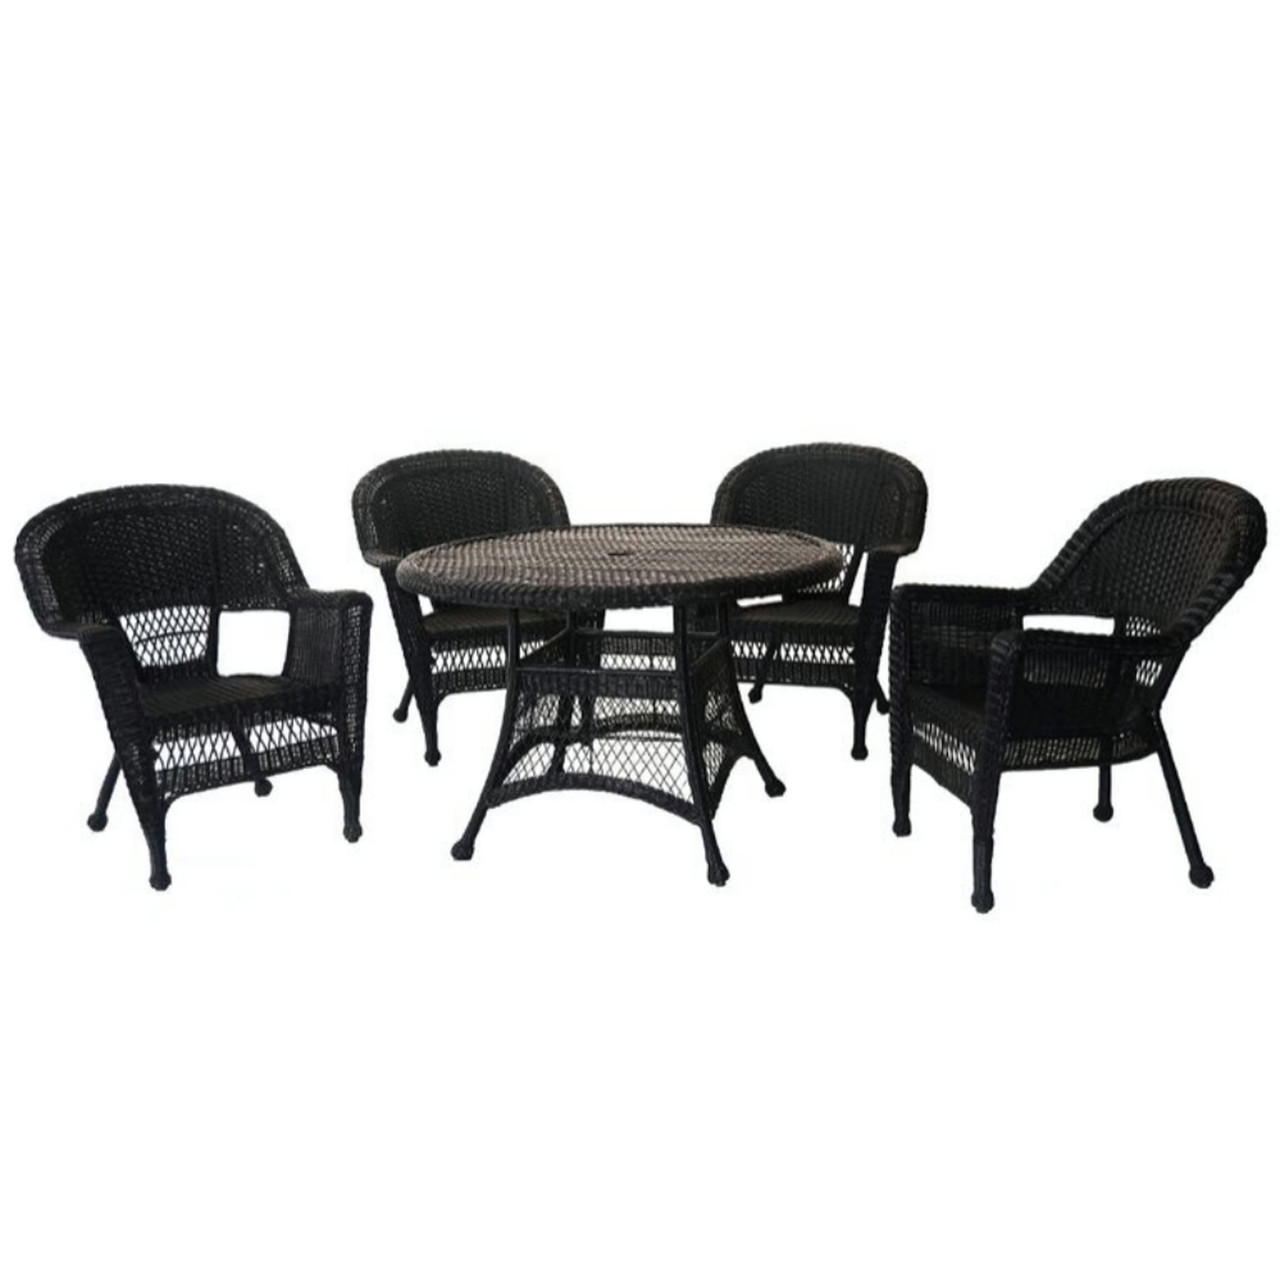 5 Piece Black Resin Wicker Chair And Table Patio Dining Furniture Set    31556373